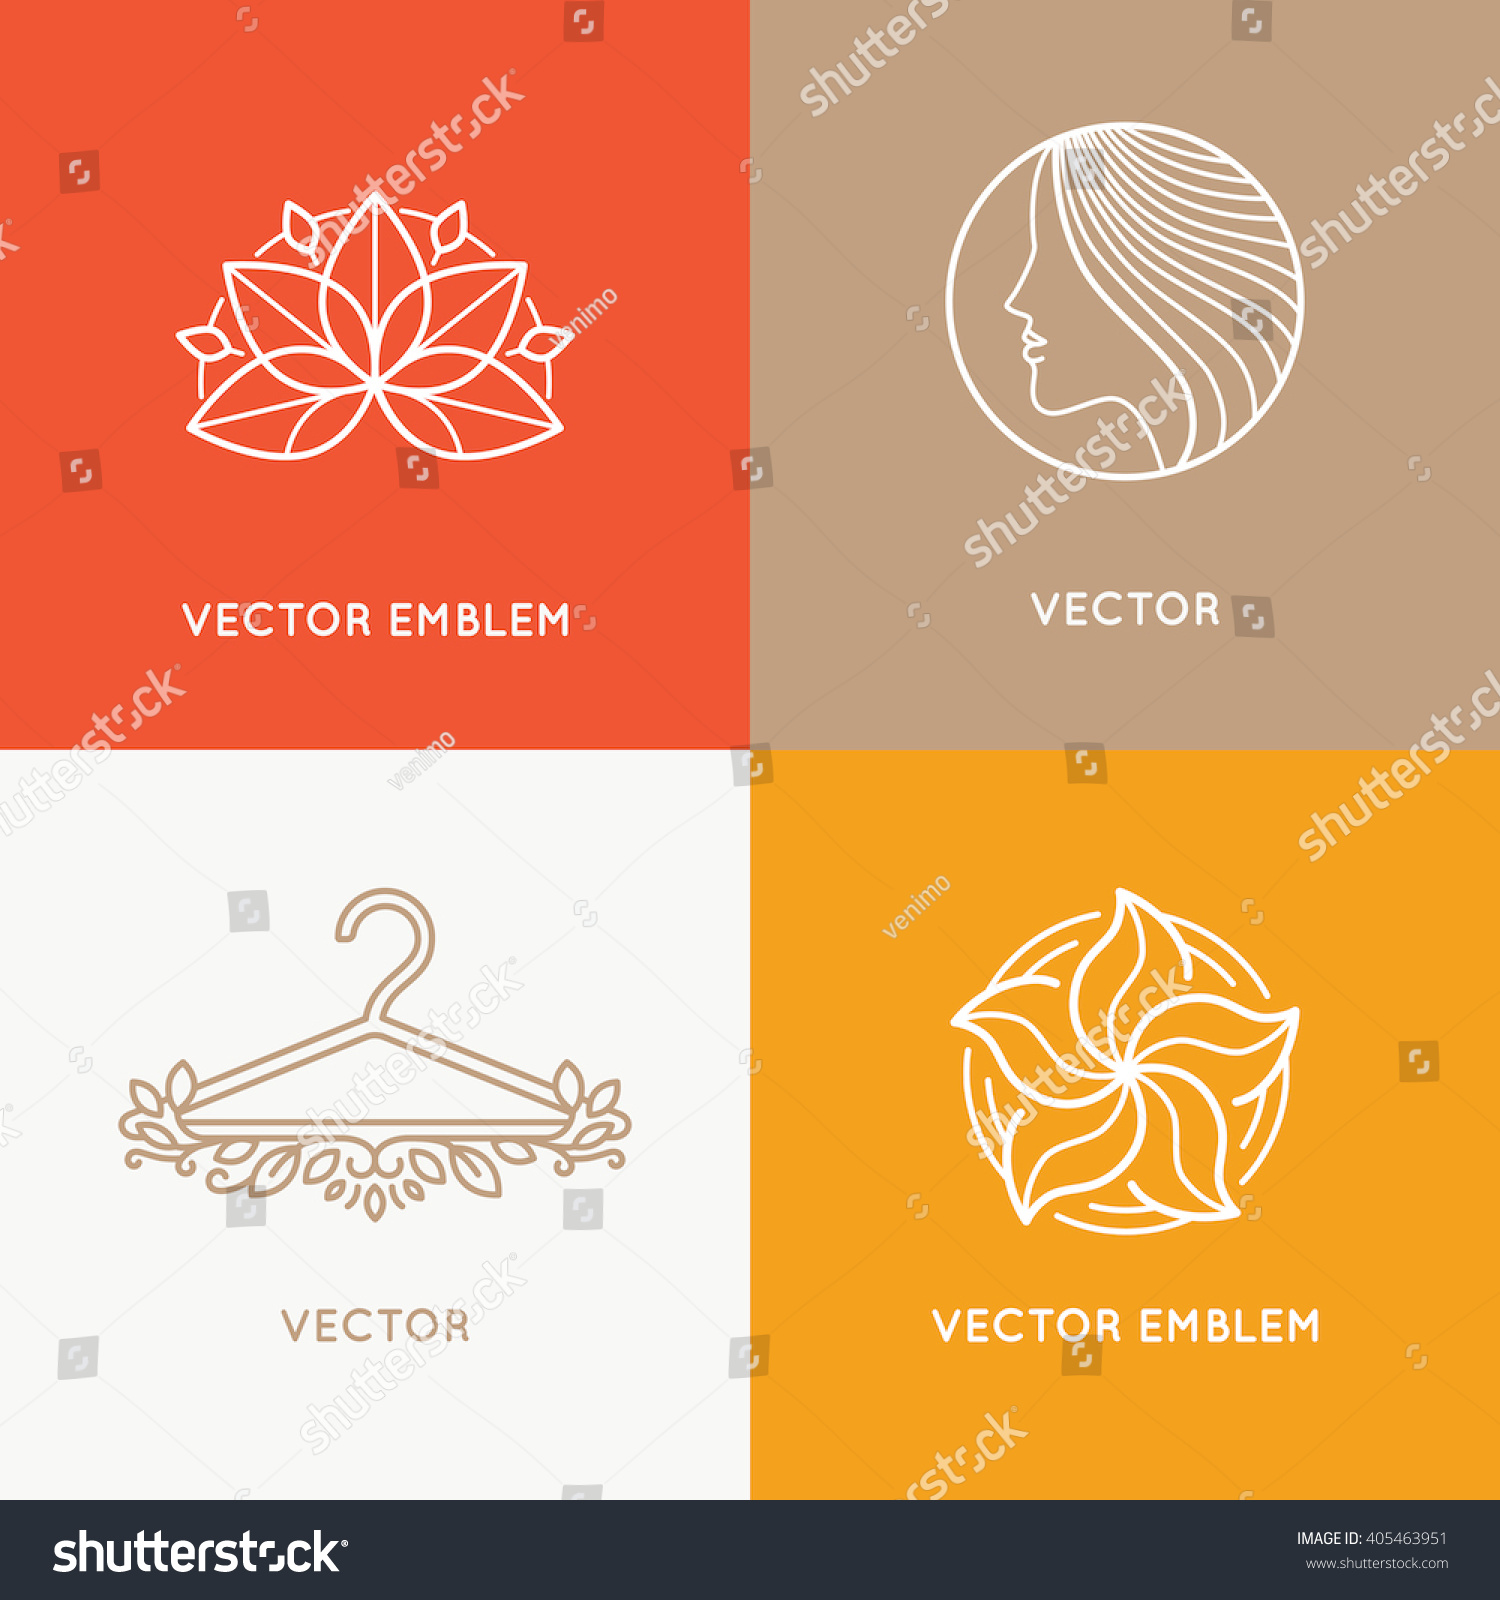 Vector set of logo design templates and emblems fashion stylist and makeup artists concepts female symbols for cosmetics and clothes shops